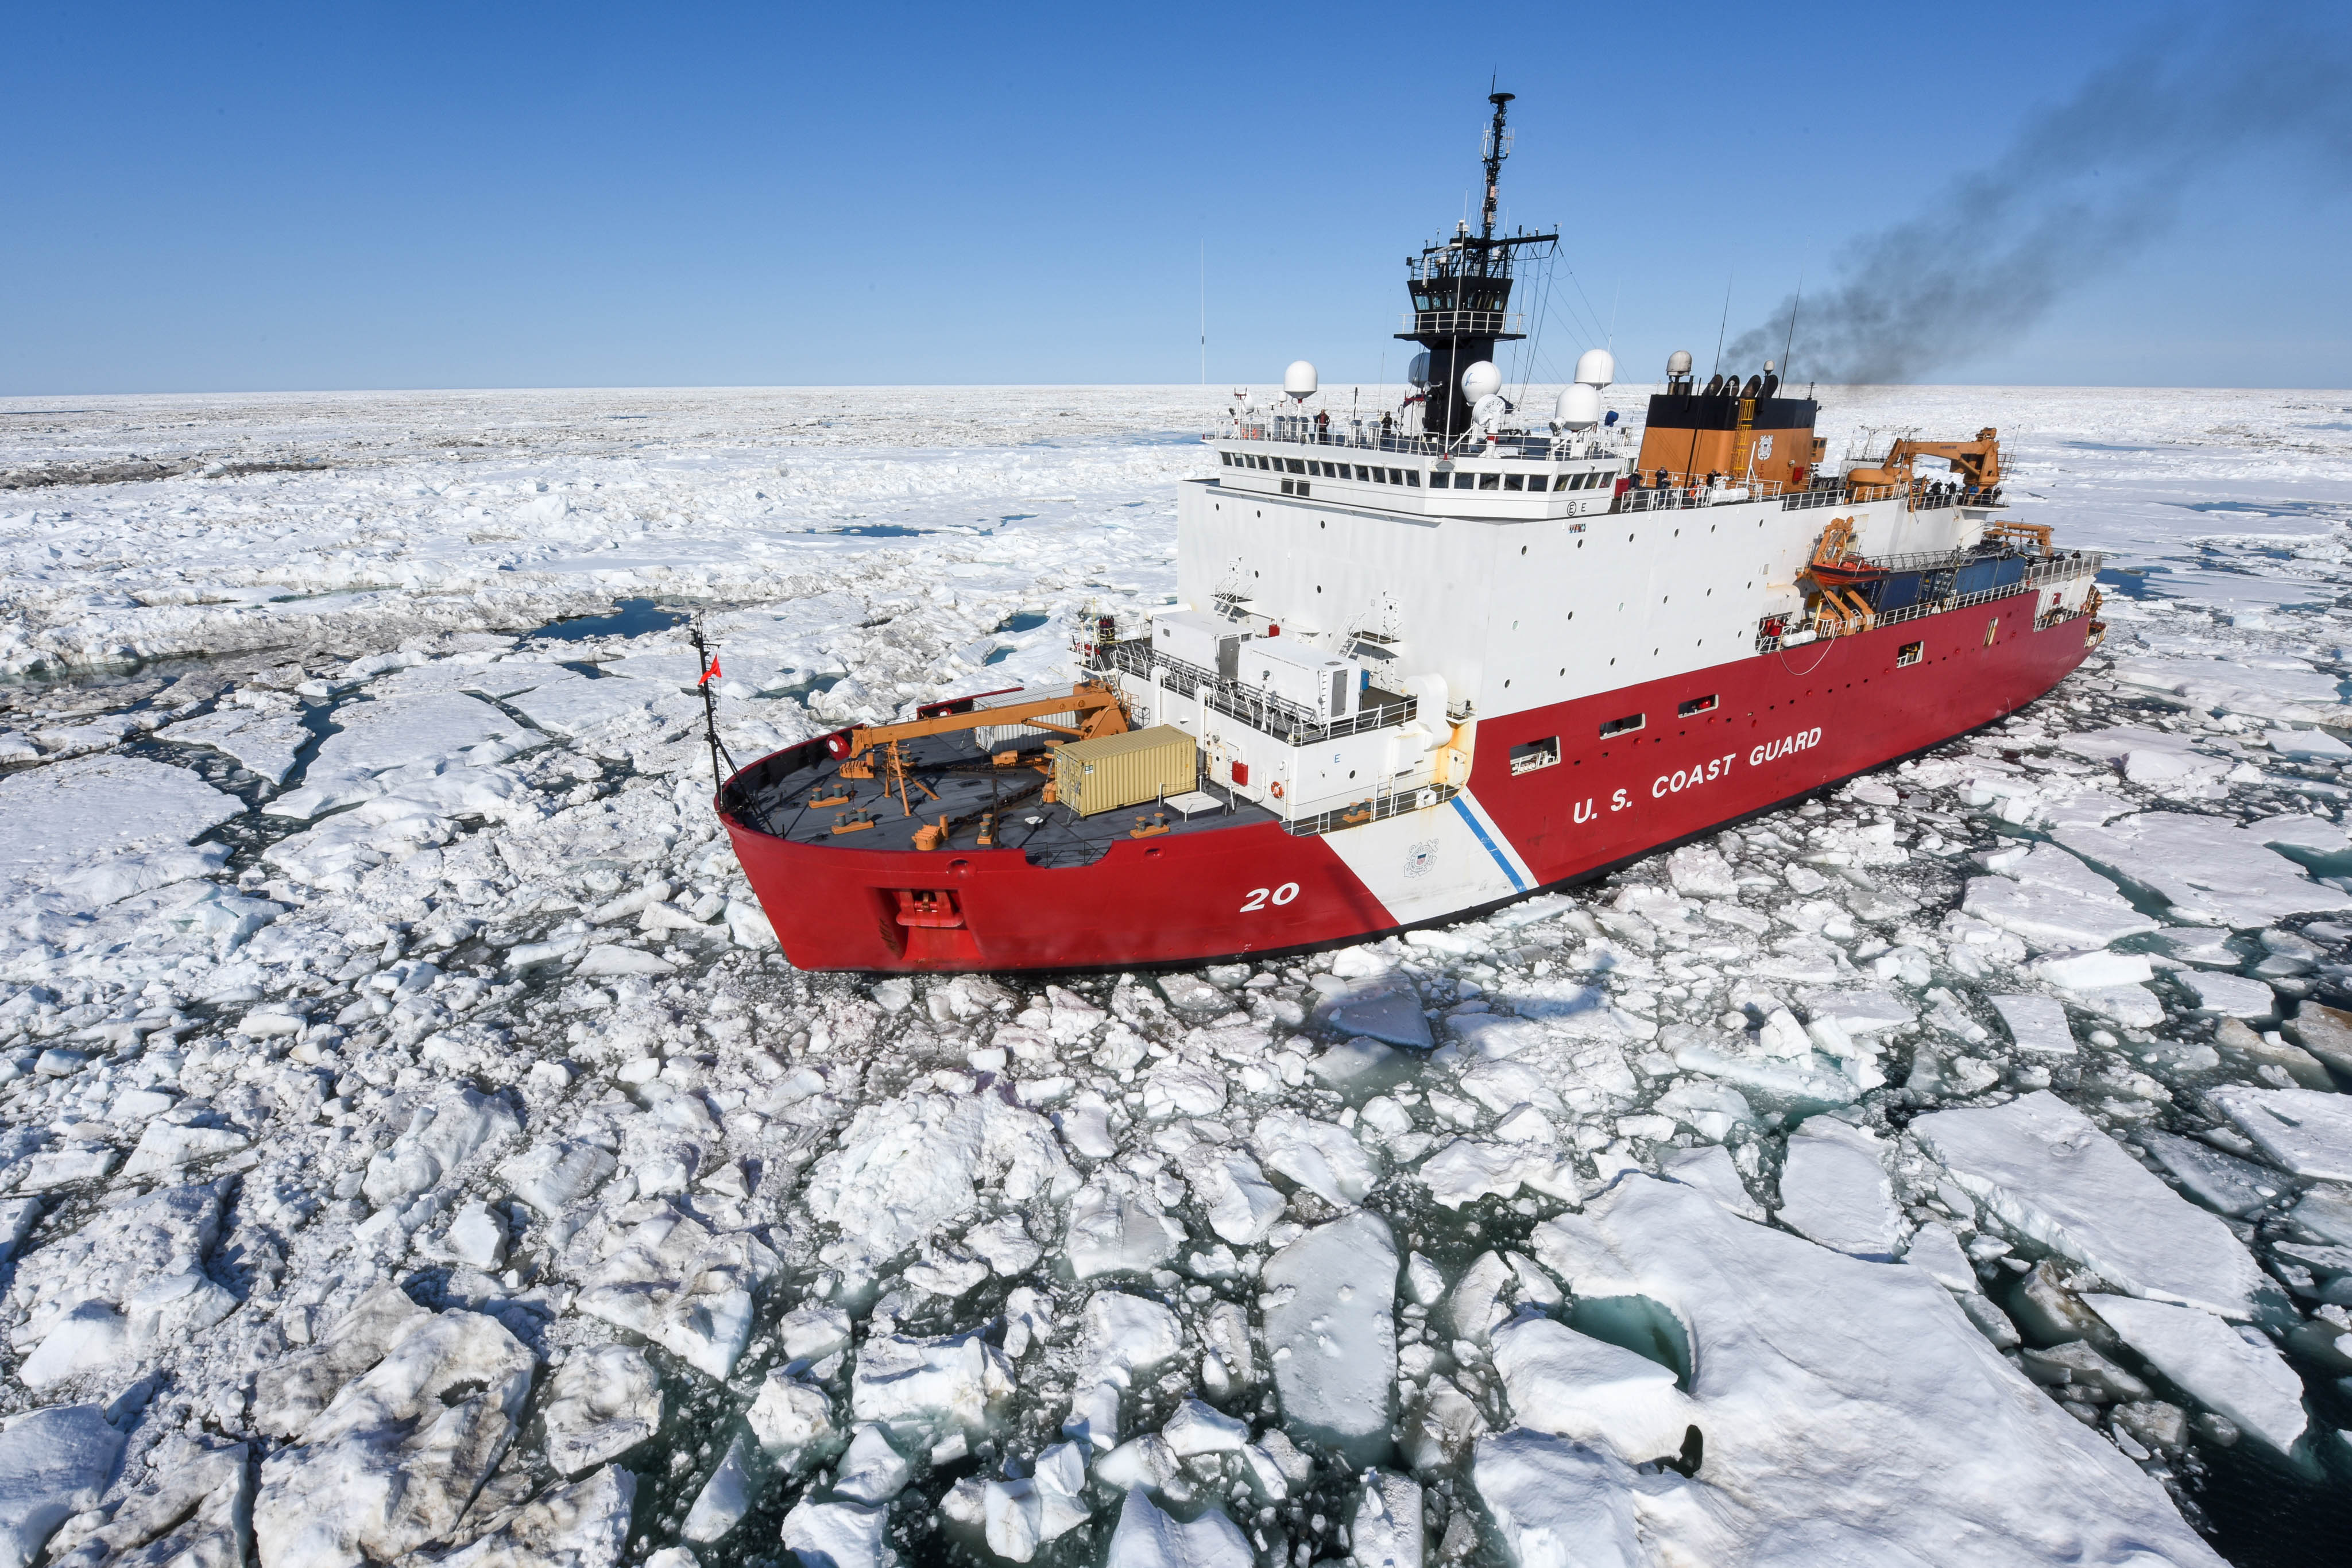 Funding for a long-awaited US heavy icebreaker is target of House GOP cuts